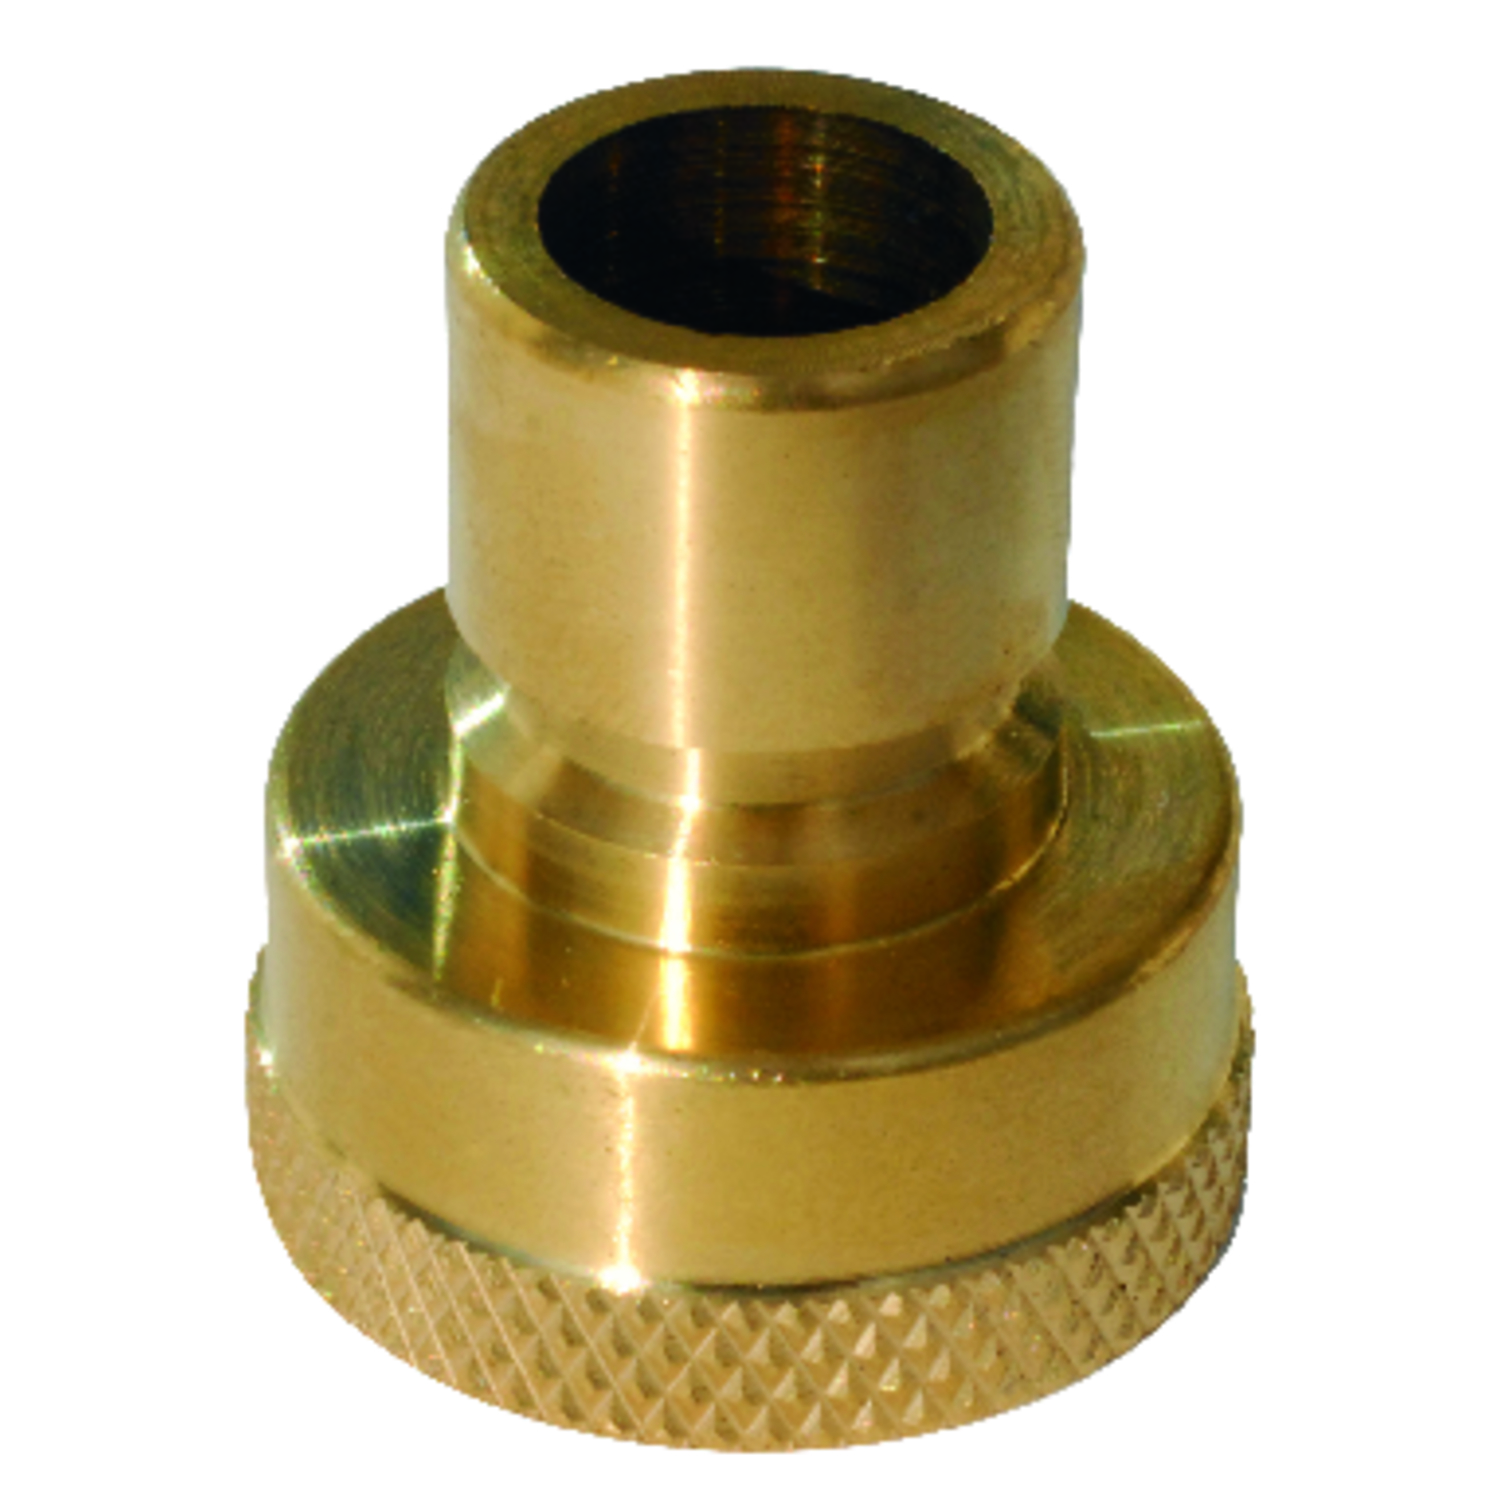 Ace  Brass  Threaded  Female  Quick Connector Coupling